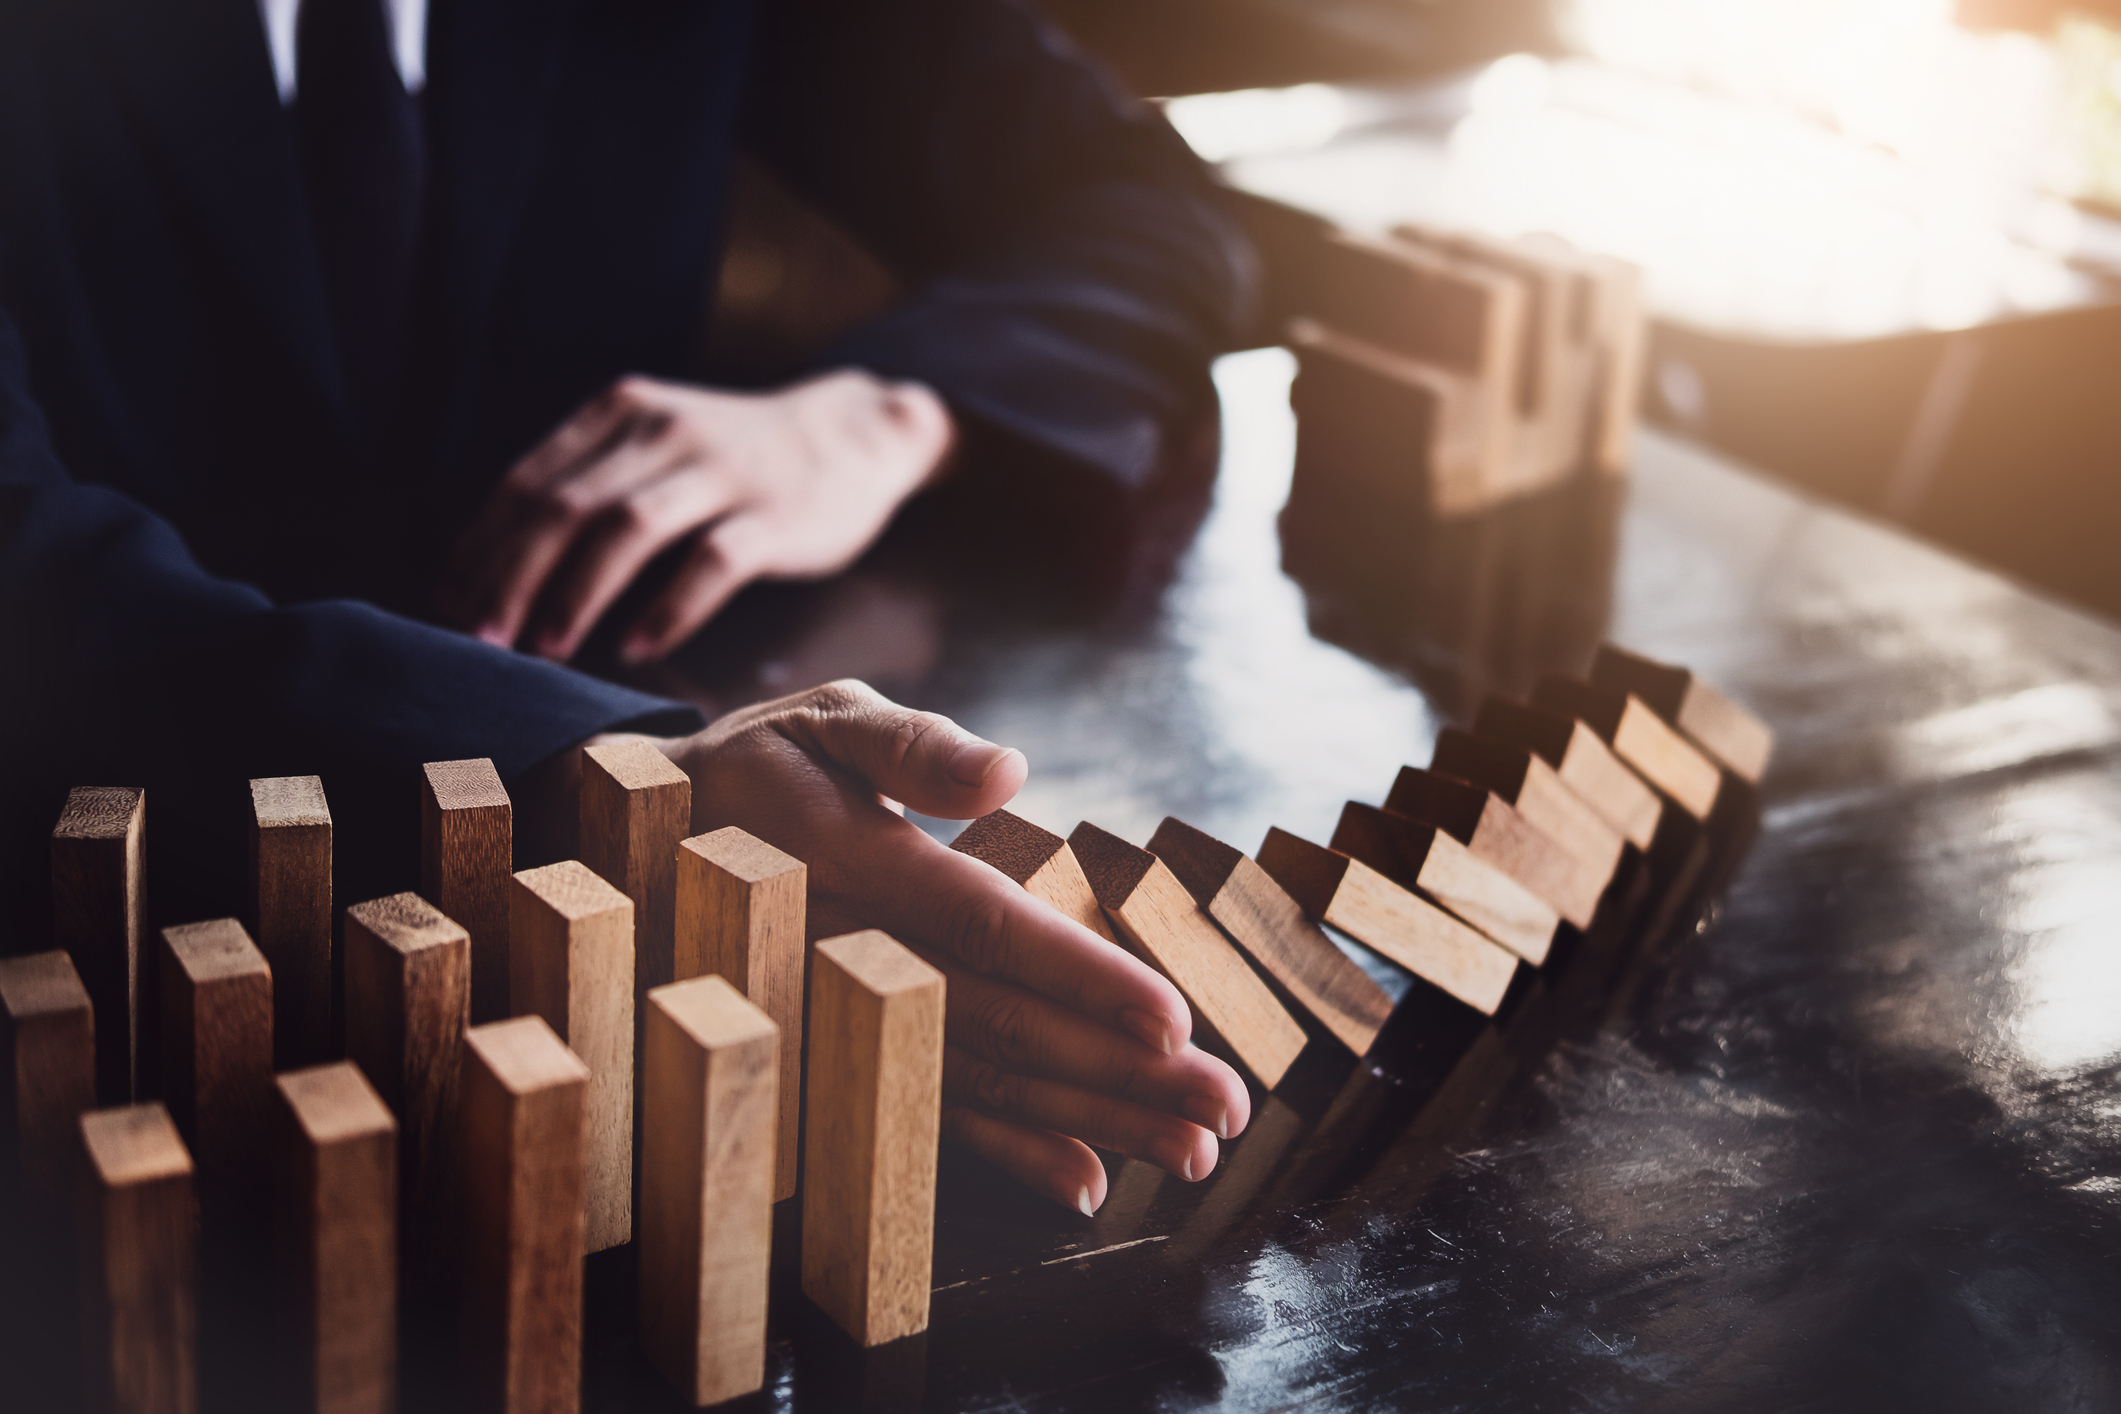 A man's hand stops a row of wooden dominoes from falling over.